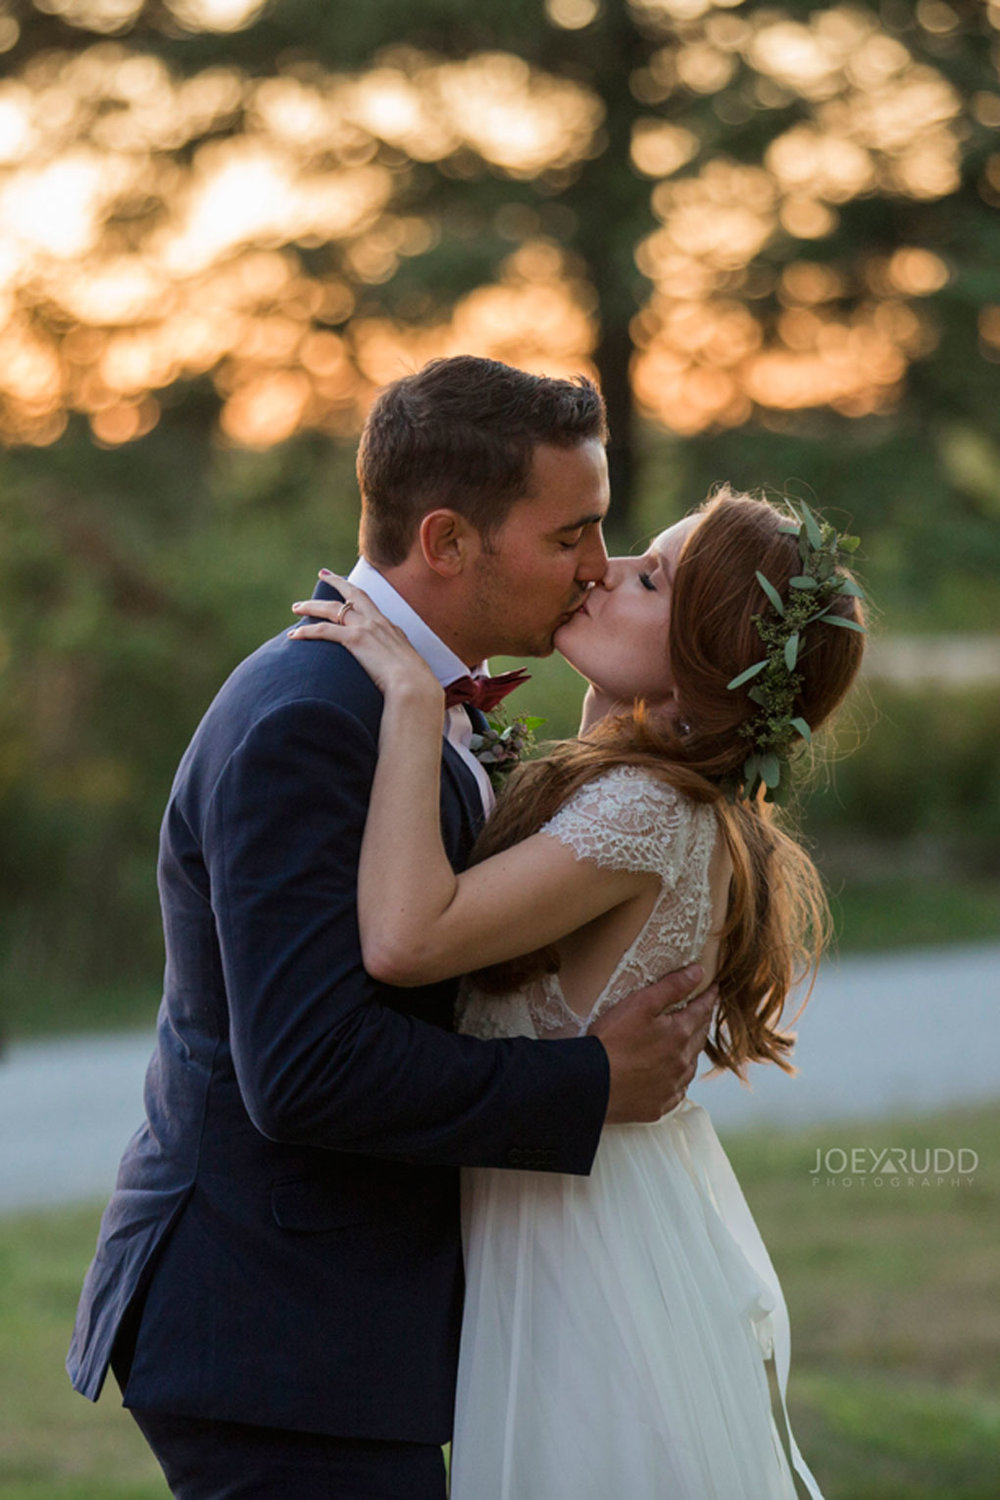 2018_09_08---Sarah-&-Zephir-533.jpgFarm Wedding, Ottawa Wedding, Ottawa Wedding Photographer, ottawa photography, ottawa wedding photography, joey rudd photography, ottawa photographer, wedding photos, wedding photo inspiration, rustic wedding, farm, natural photos, candid wedding photos, bride and groom, wedding photo with old car, candid photos, reception, sunset, golden hour, candid, sun setting